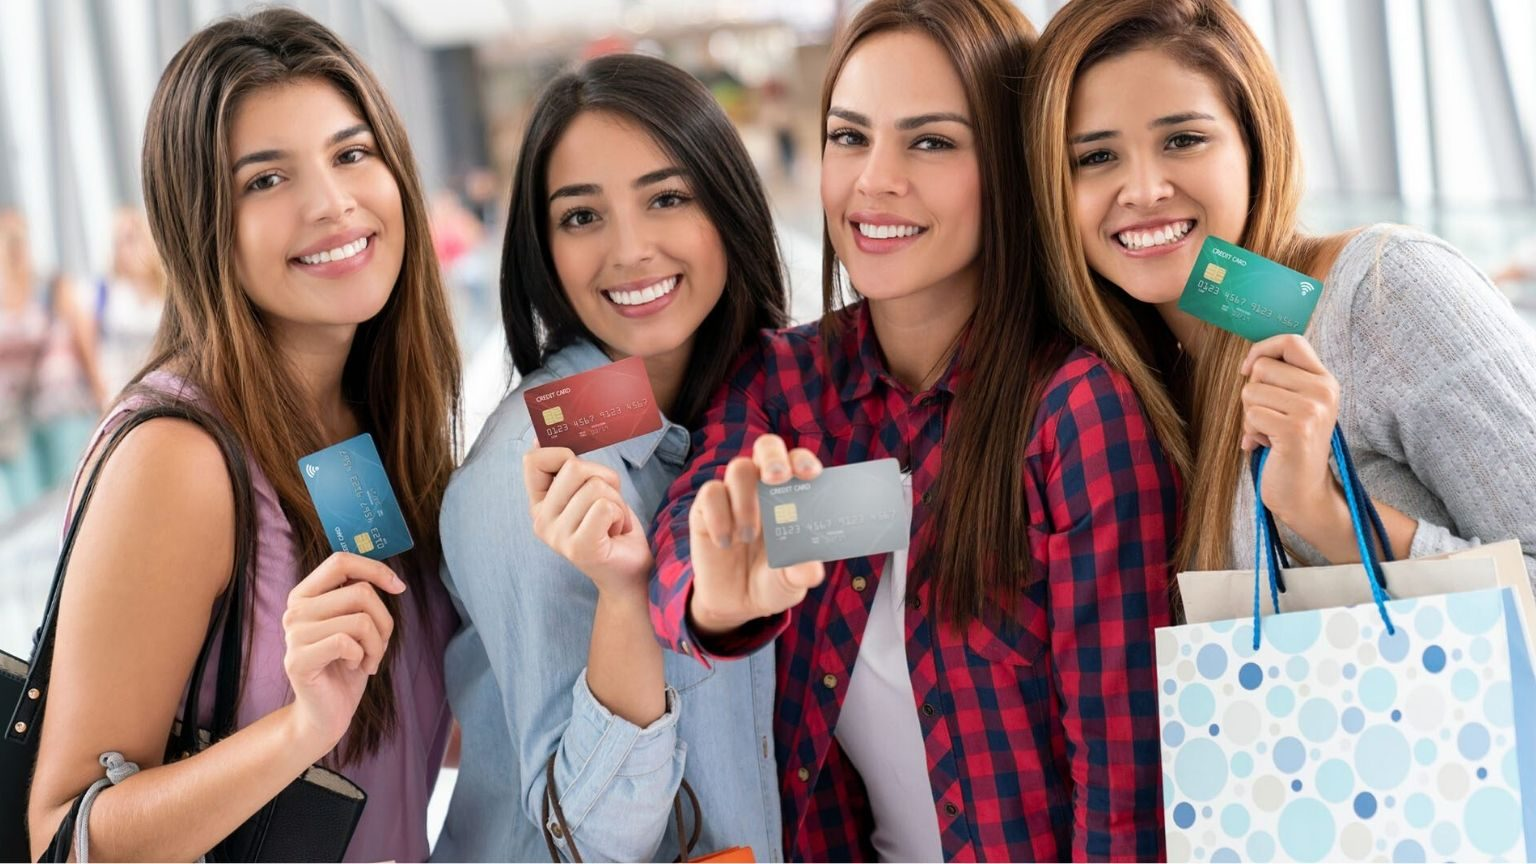 students showing credit cards